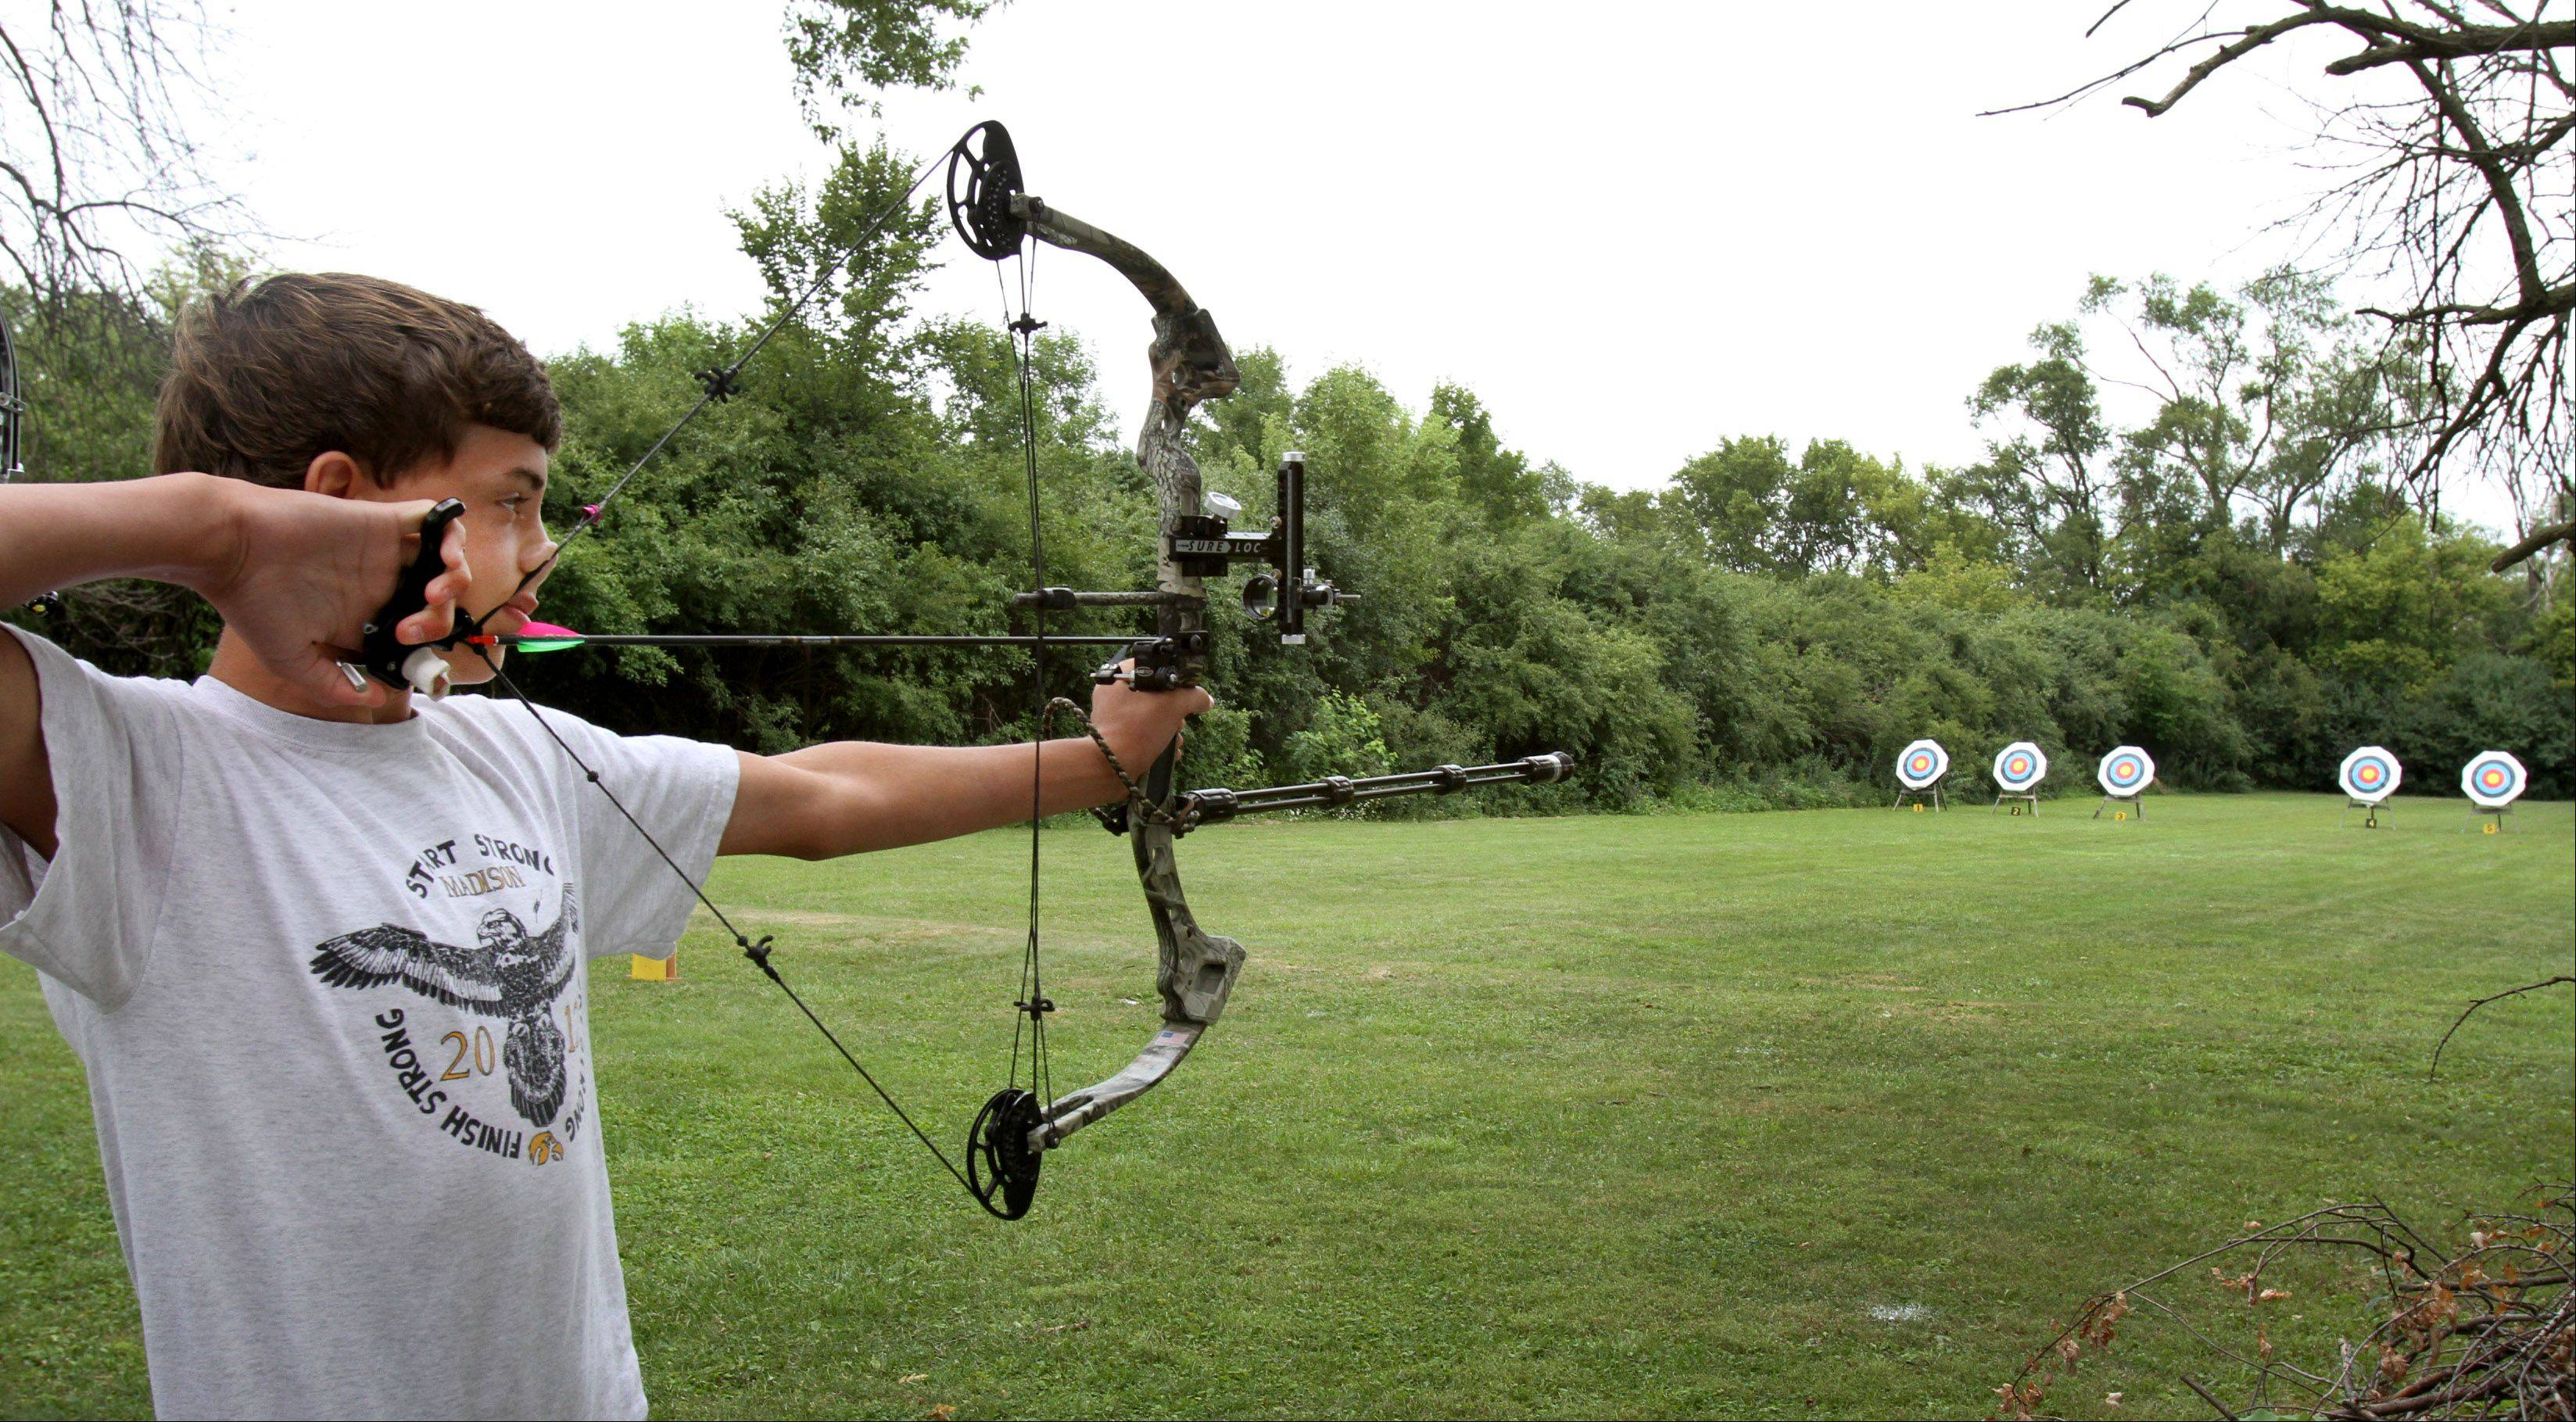 "Daniel Petro, 15, of Naperville, lines up his shot with a compound bow in the 900 metric round at a target of 60 meters, as he competes in the Illinois Target Archery Association's annual Outdoor State Championship at Wheaton Rifle Club in West Chicago on Sunday. ""This is a sport that is growing in popularity, especially with kids"", said Tom Havel, president of ITAA."